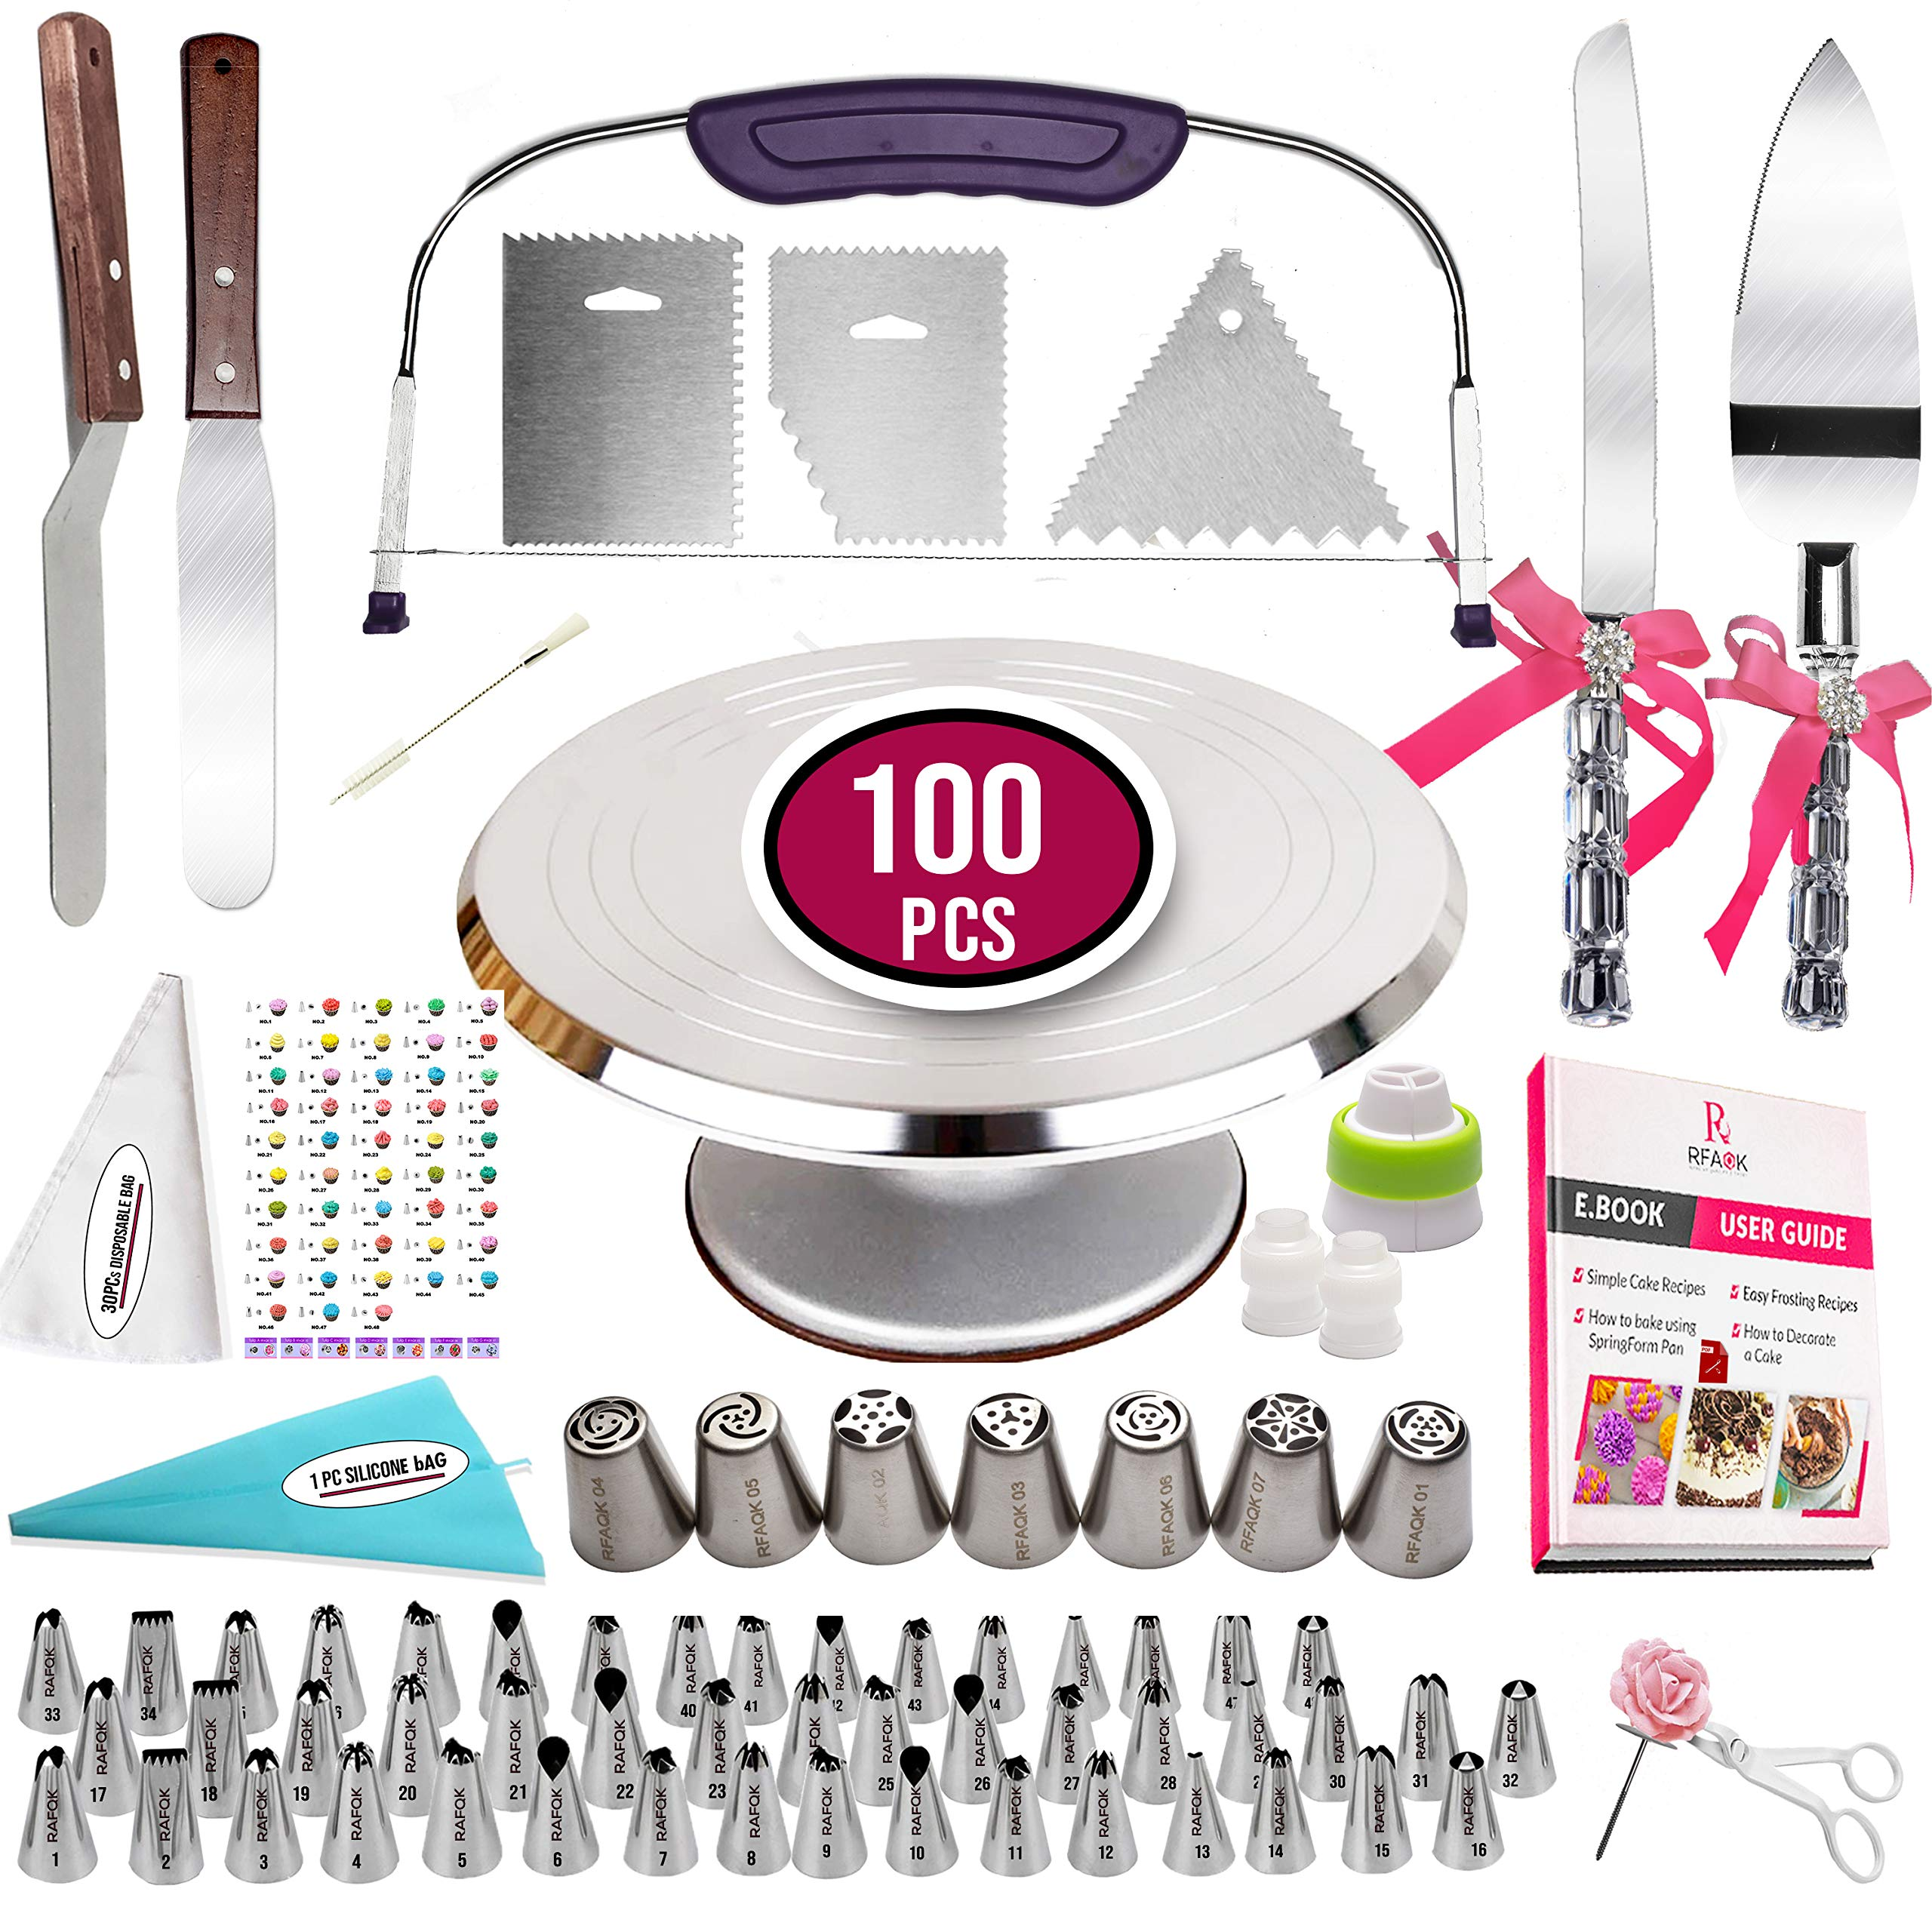 Decorating Turntable Rotating Stand Cake nozzles Straight Spatula Cake